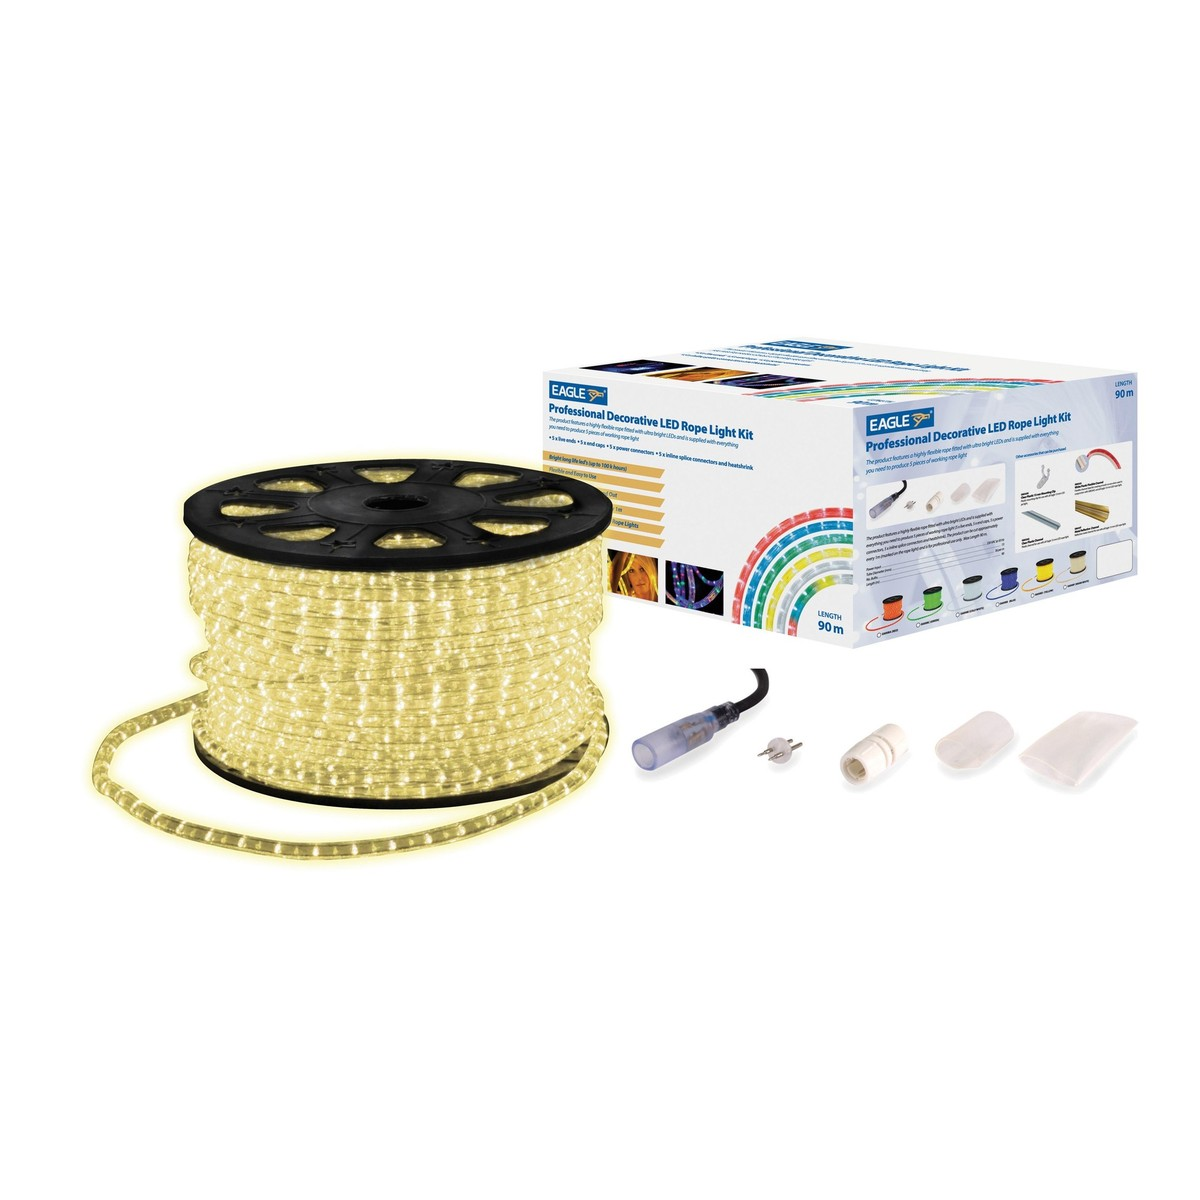 Eagle static led rope light with wiring kit 90m warm white at eagle static led rope light with wiring kit 90m warm white aloadofball Choice Image